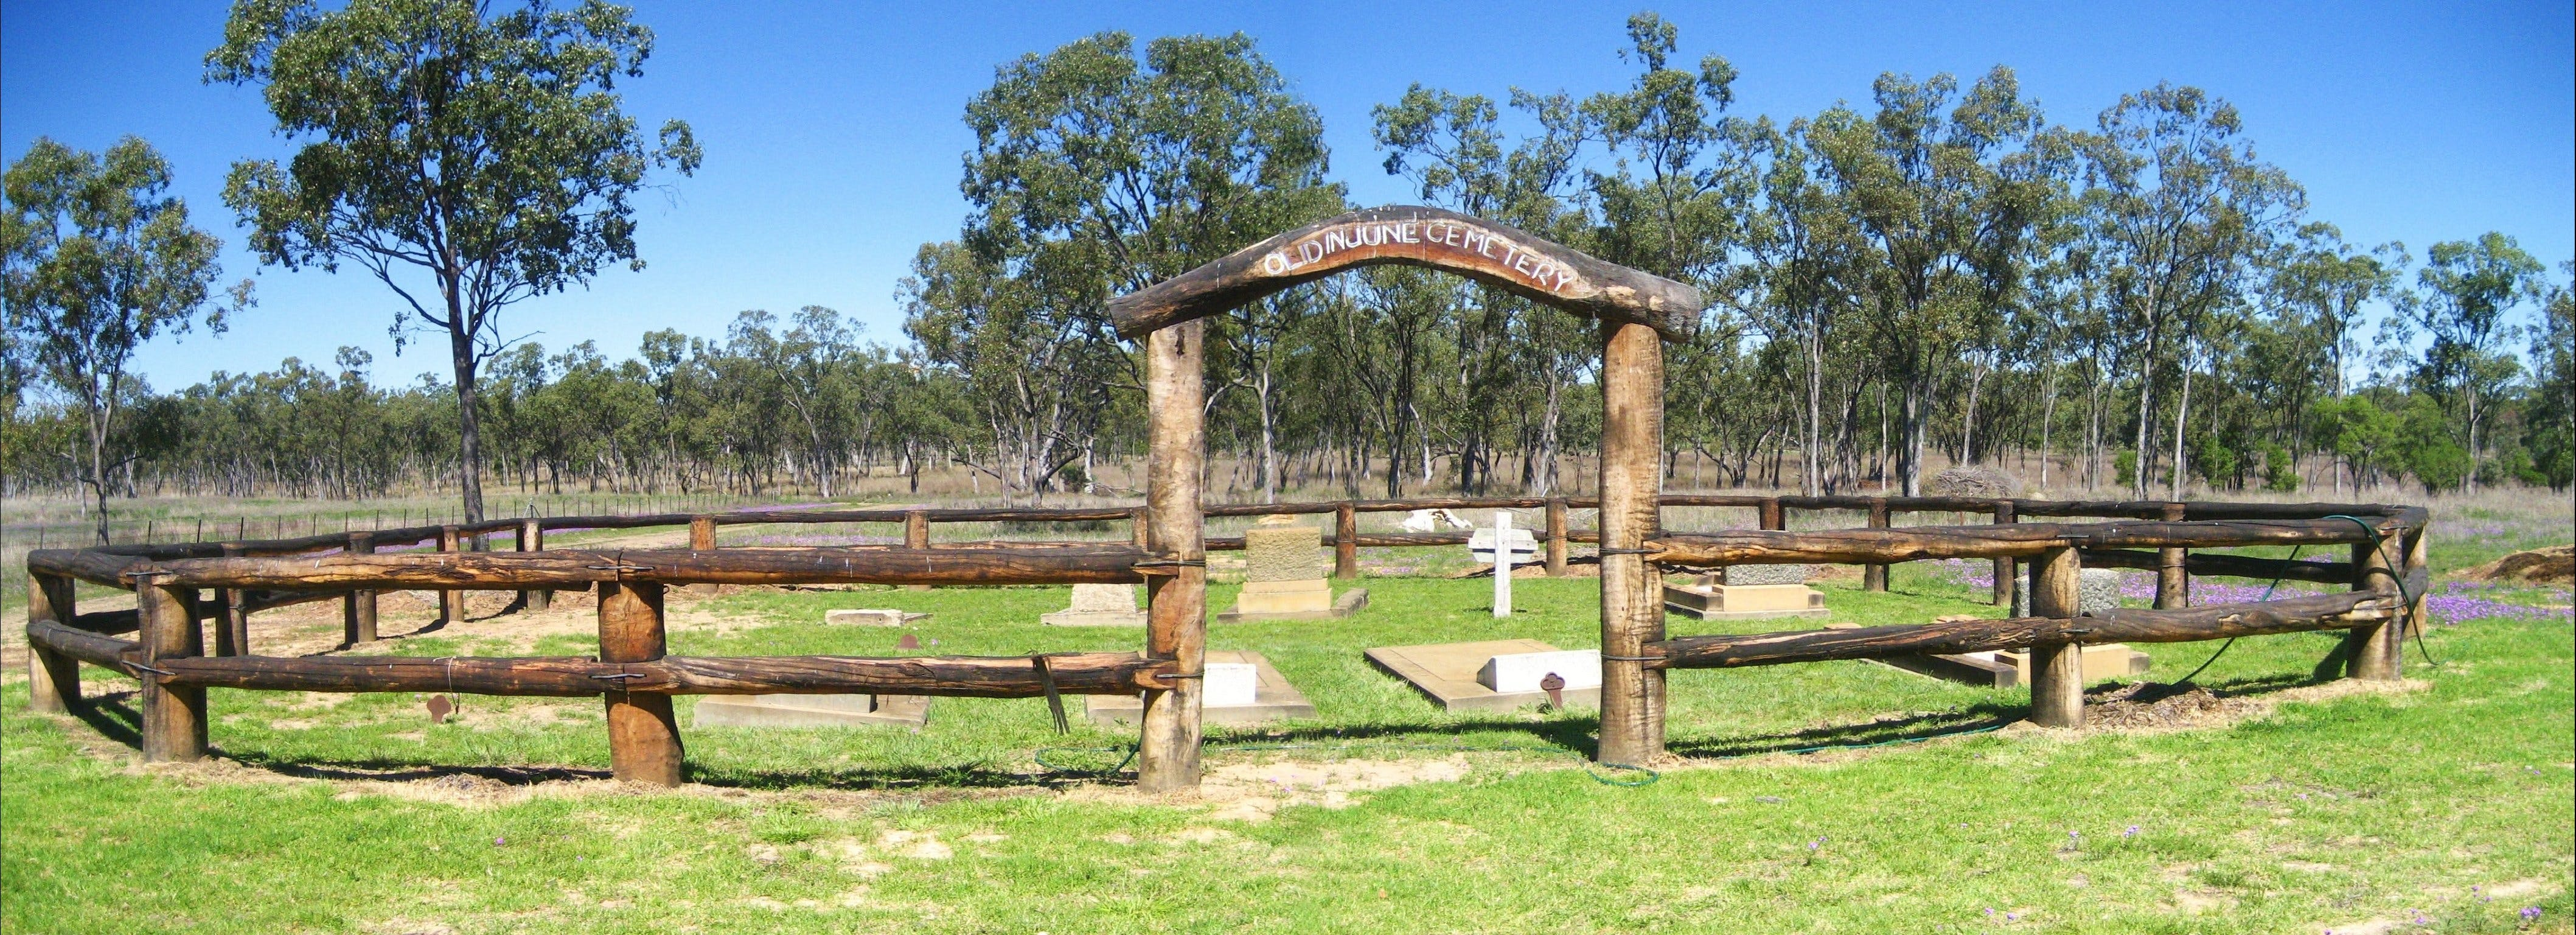 Old Injune Cemetery - VIC Tourism